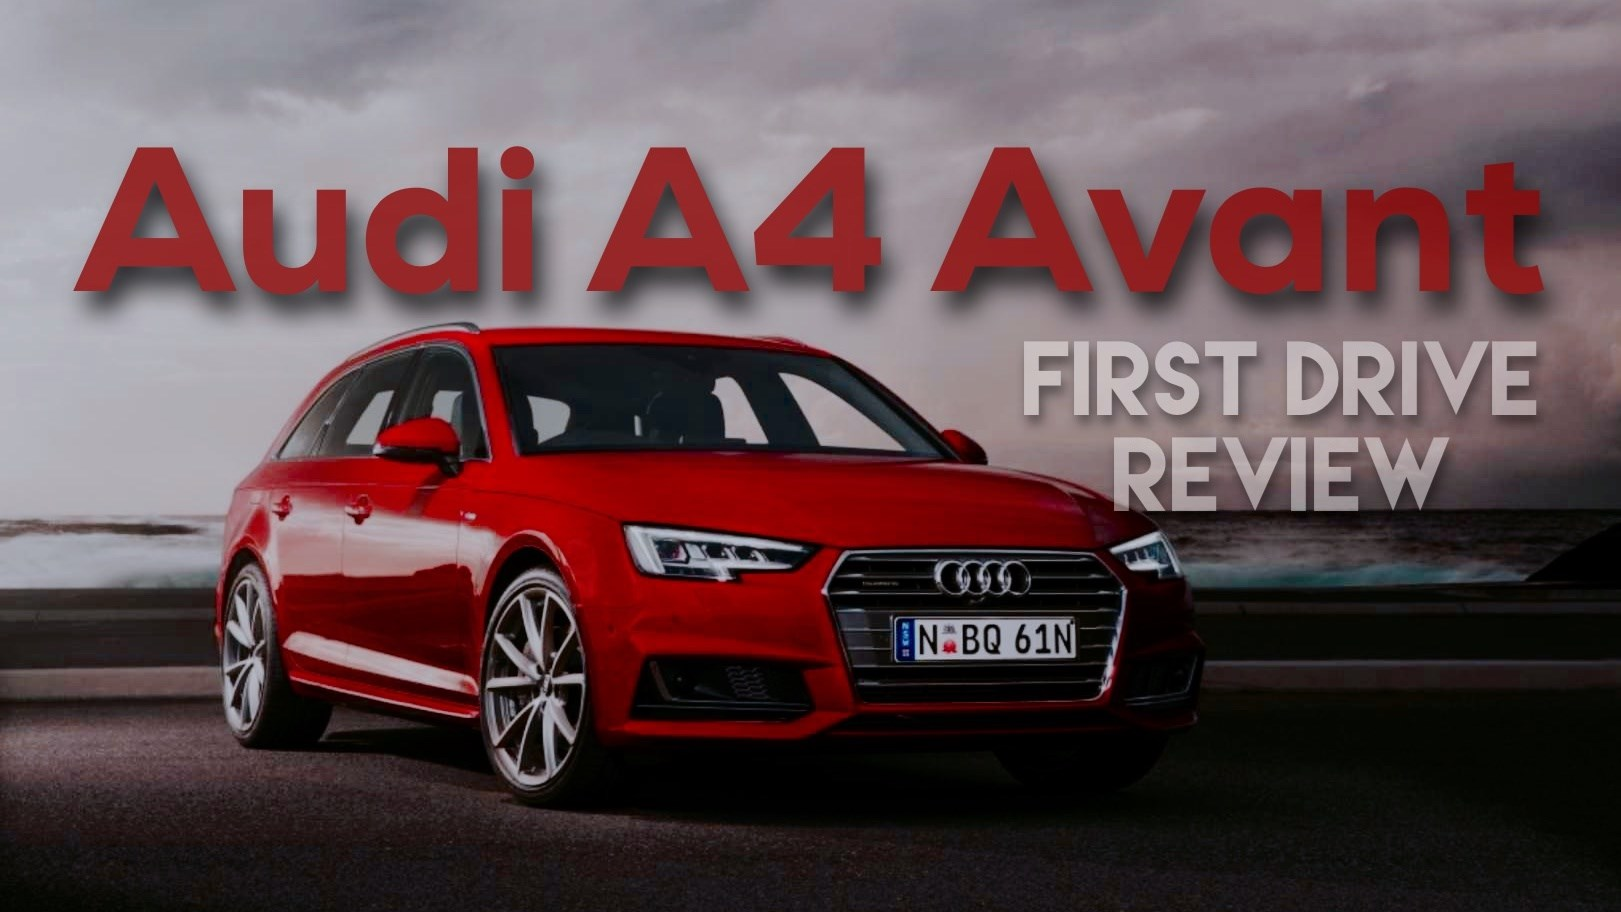 2016 Audi A4 Avant First Drive Review